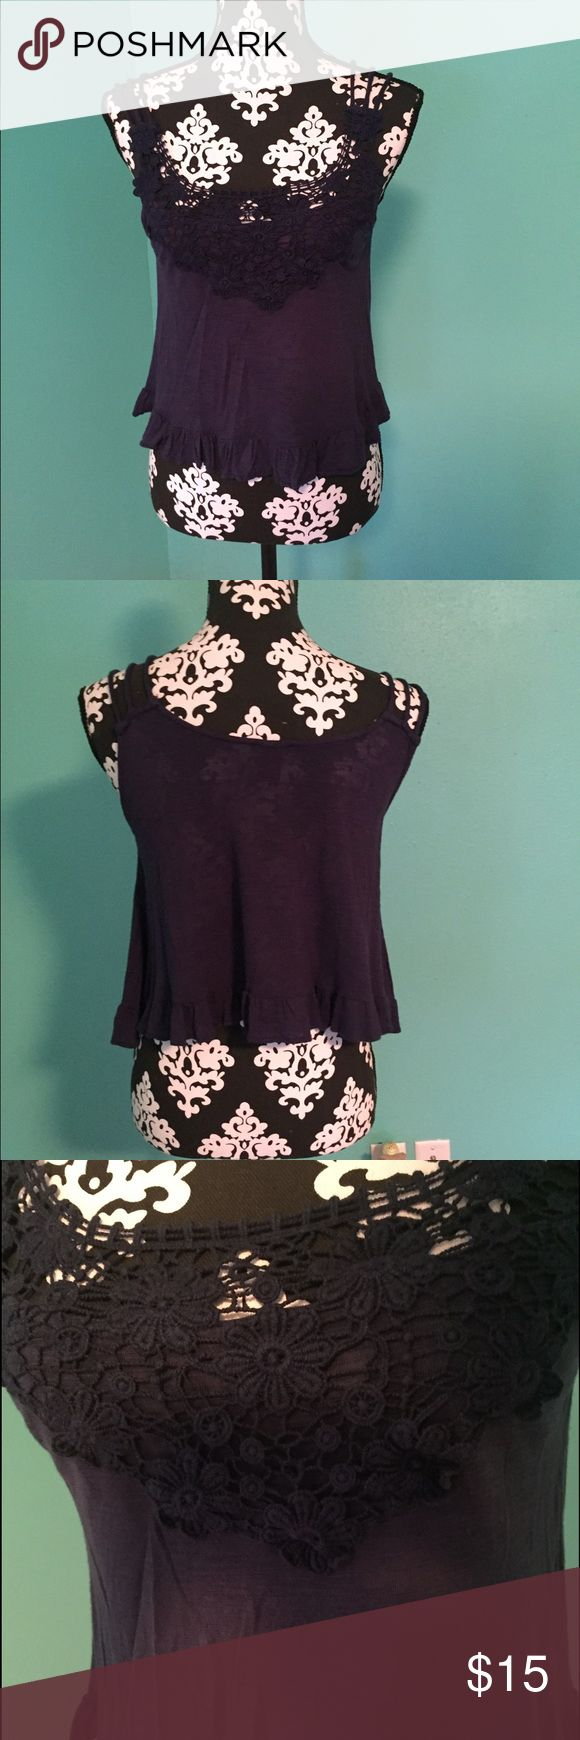 Rue 21 crop top Rue 21 flowy crop top. Great condition. Non smoking home Rue 21 Tops